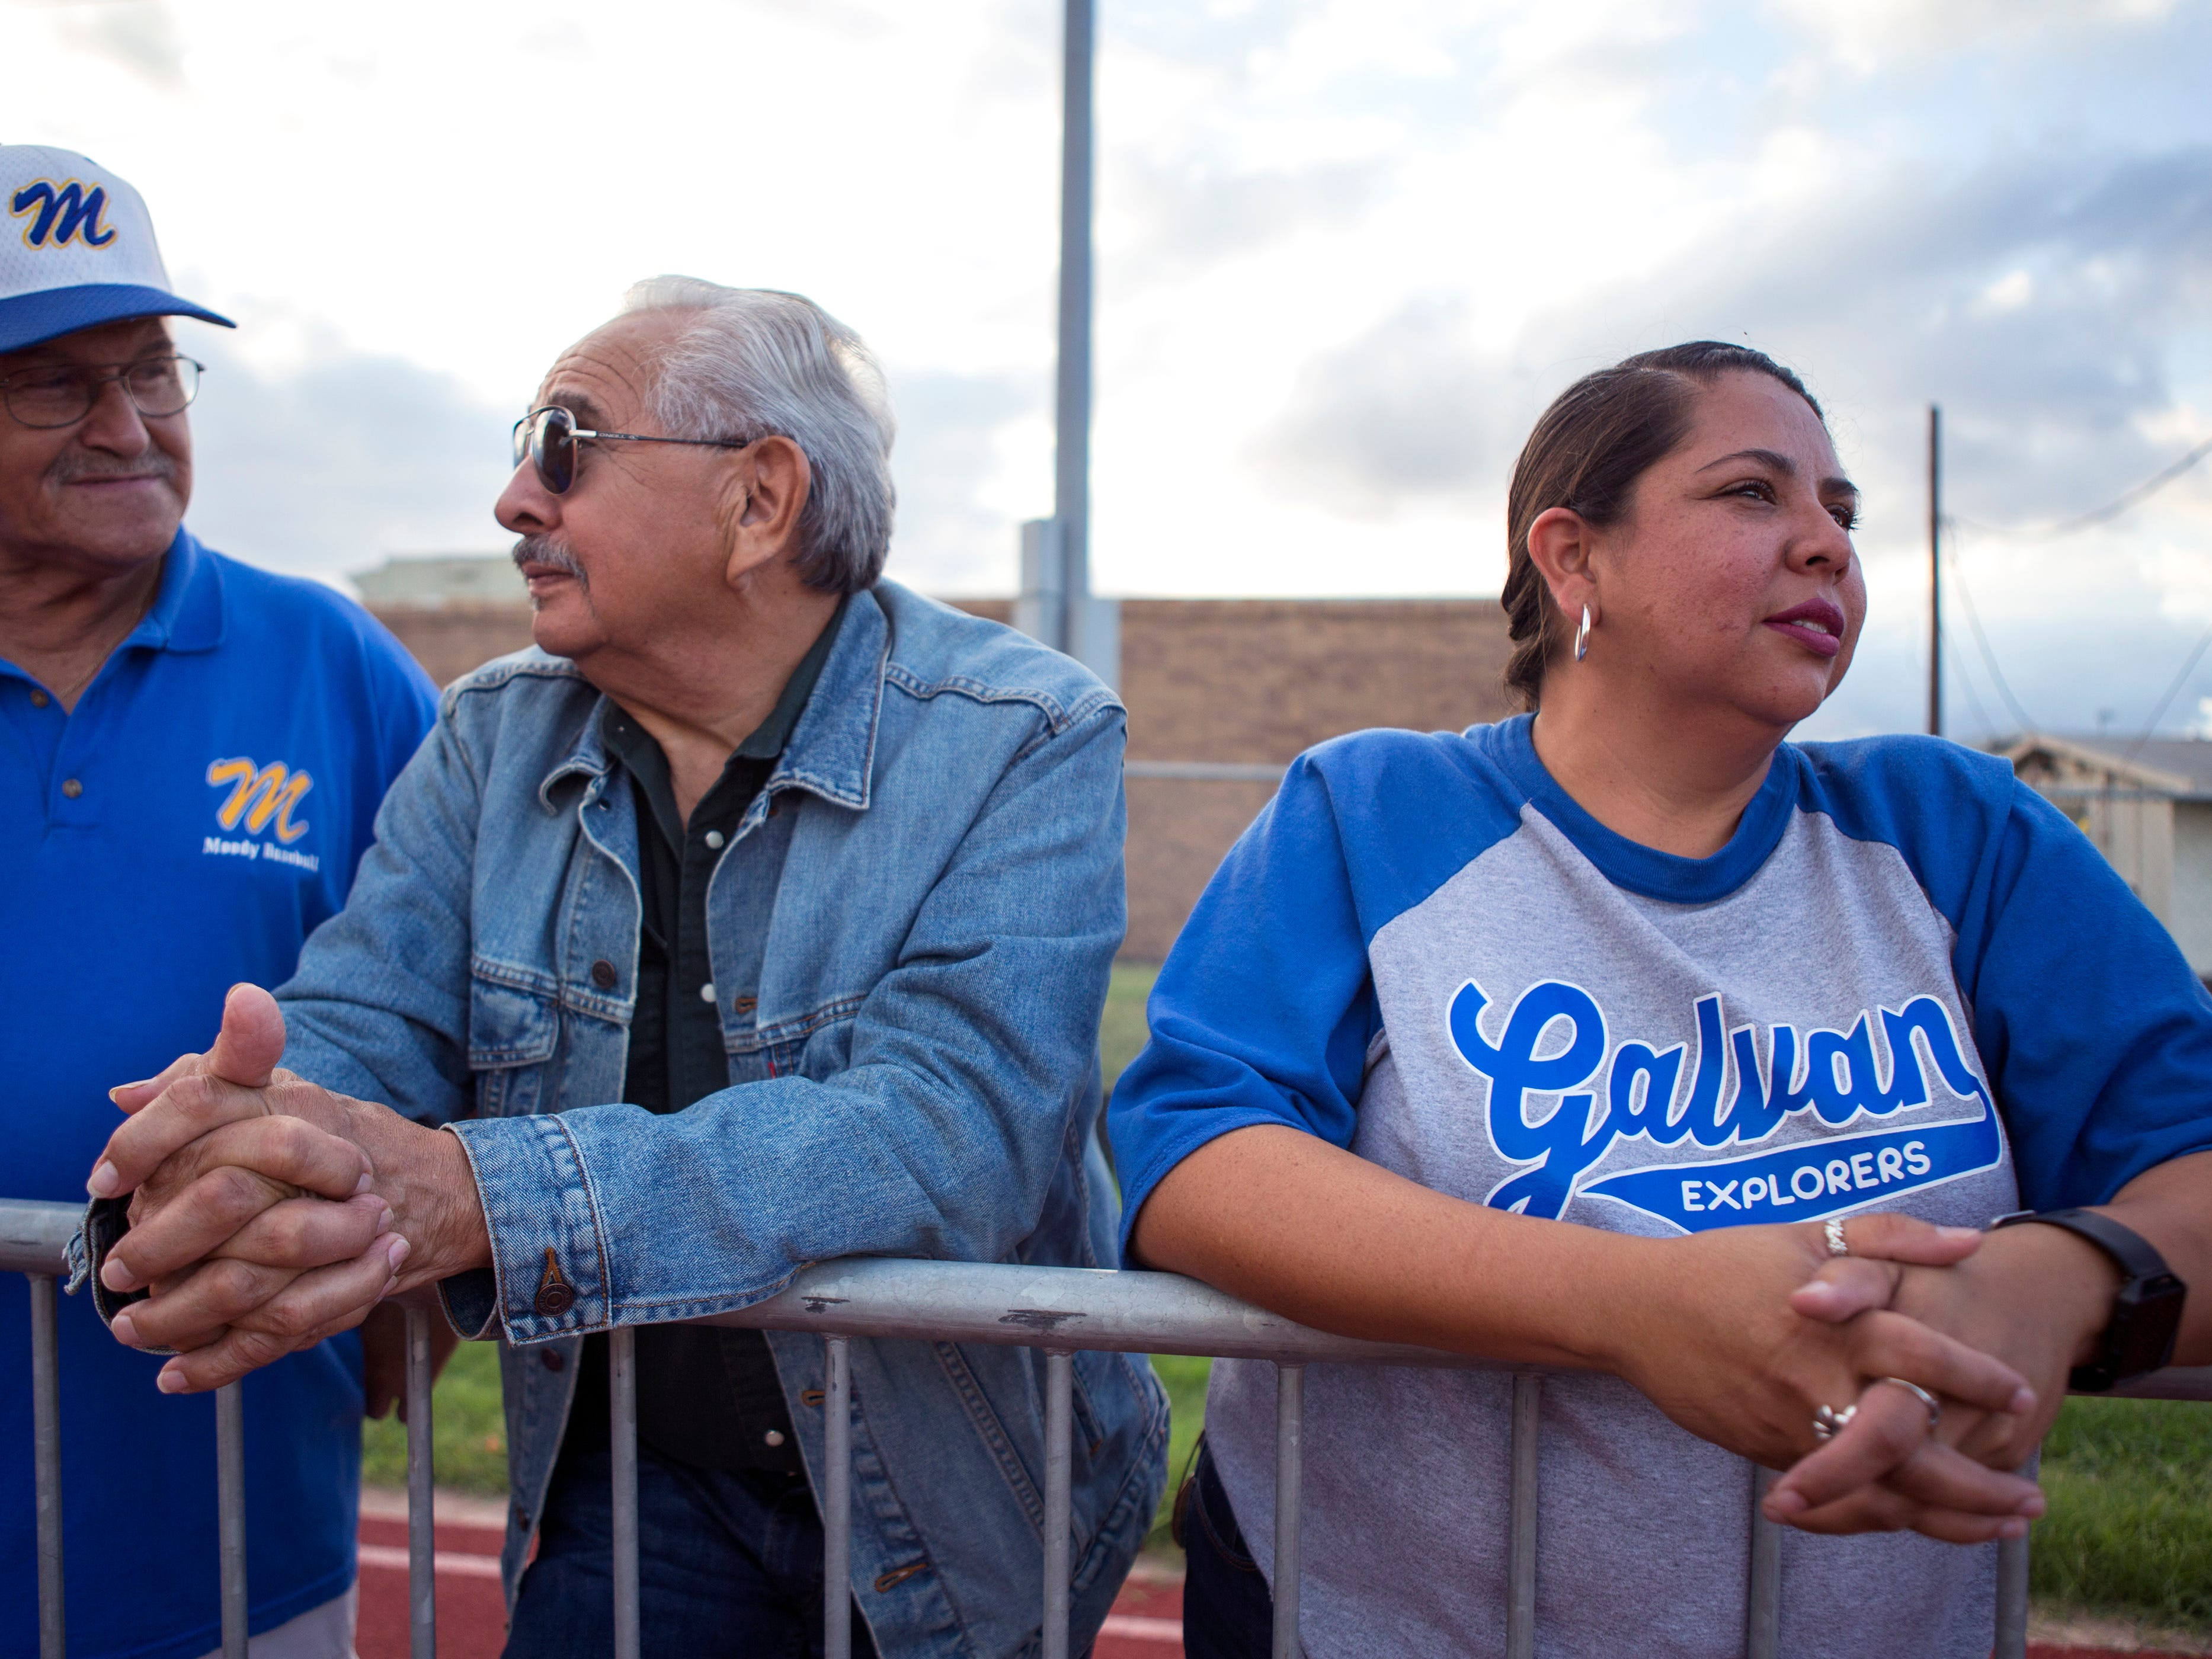 Richard Perales (from left), J.J. Flores and Angel Flores-Cano attend a King High School junior varsity football game at Moody High School on September 27, 2018. A kindergarten teacher at Galvan Elementary School in Corpus Christi, TX, Flores-Cano delivers groceries with Shipt in order to help make ends meet. She averages 12 to 15 hours per week delivering groceries. Texas ranked 28th in the nation for teacher pay for the 2016-17 school year.